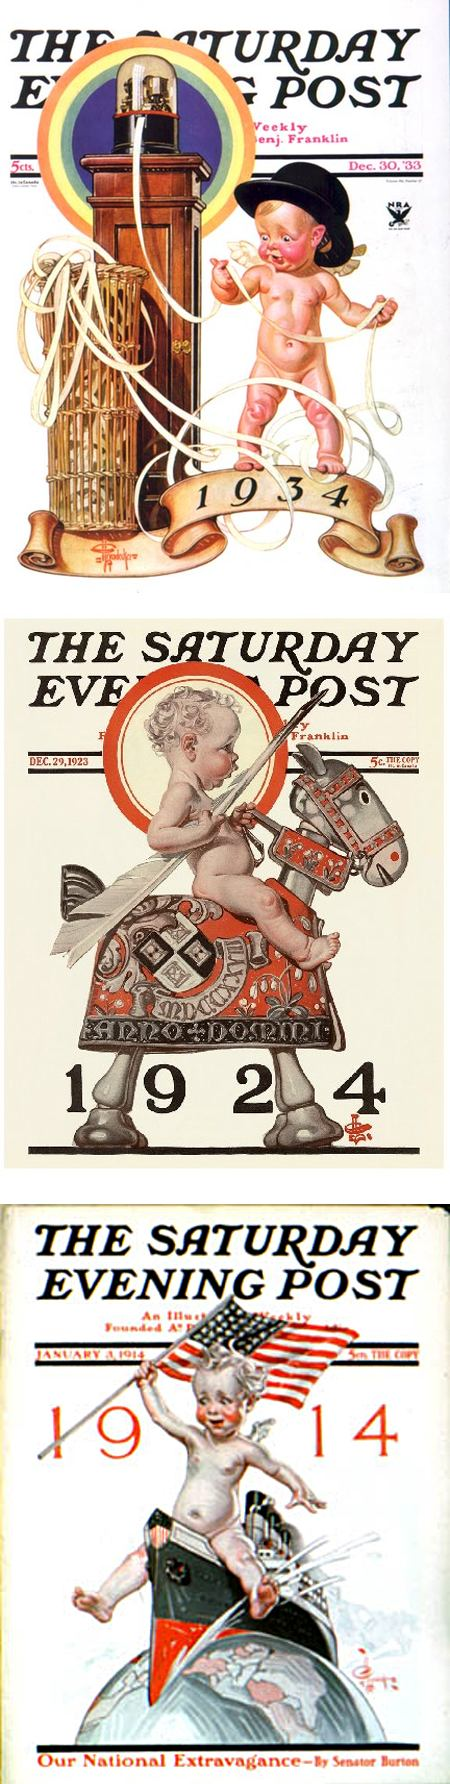 Happy Leyendecker Baby New Year 2014!, J.C. Leyendecker